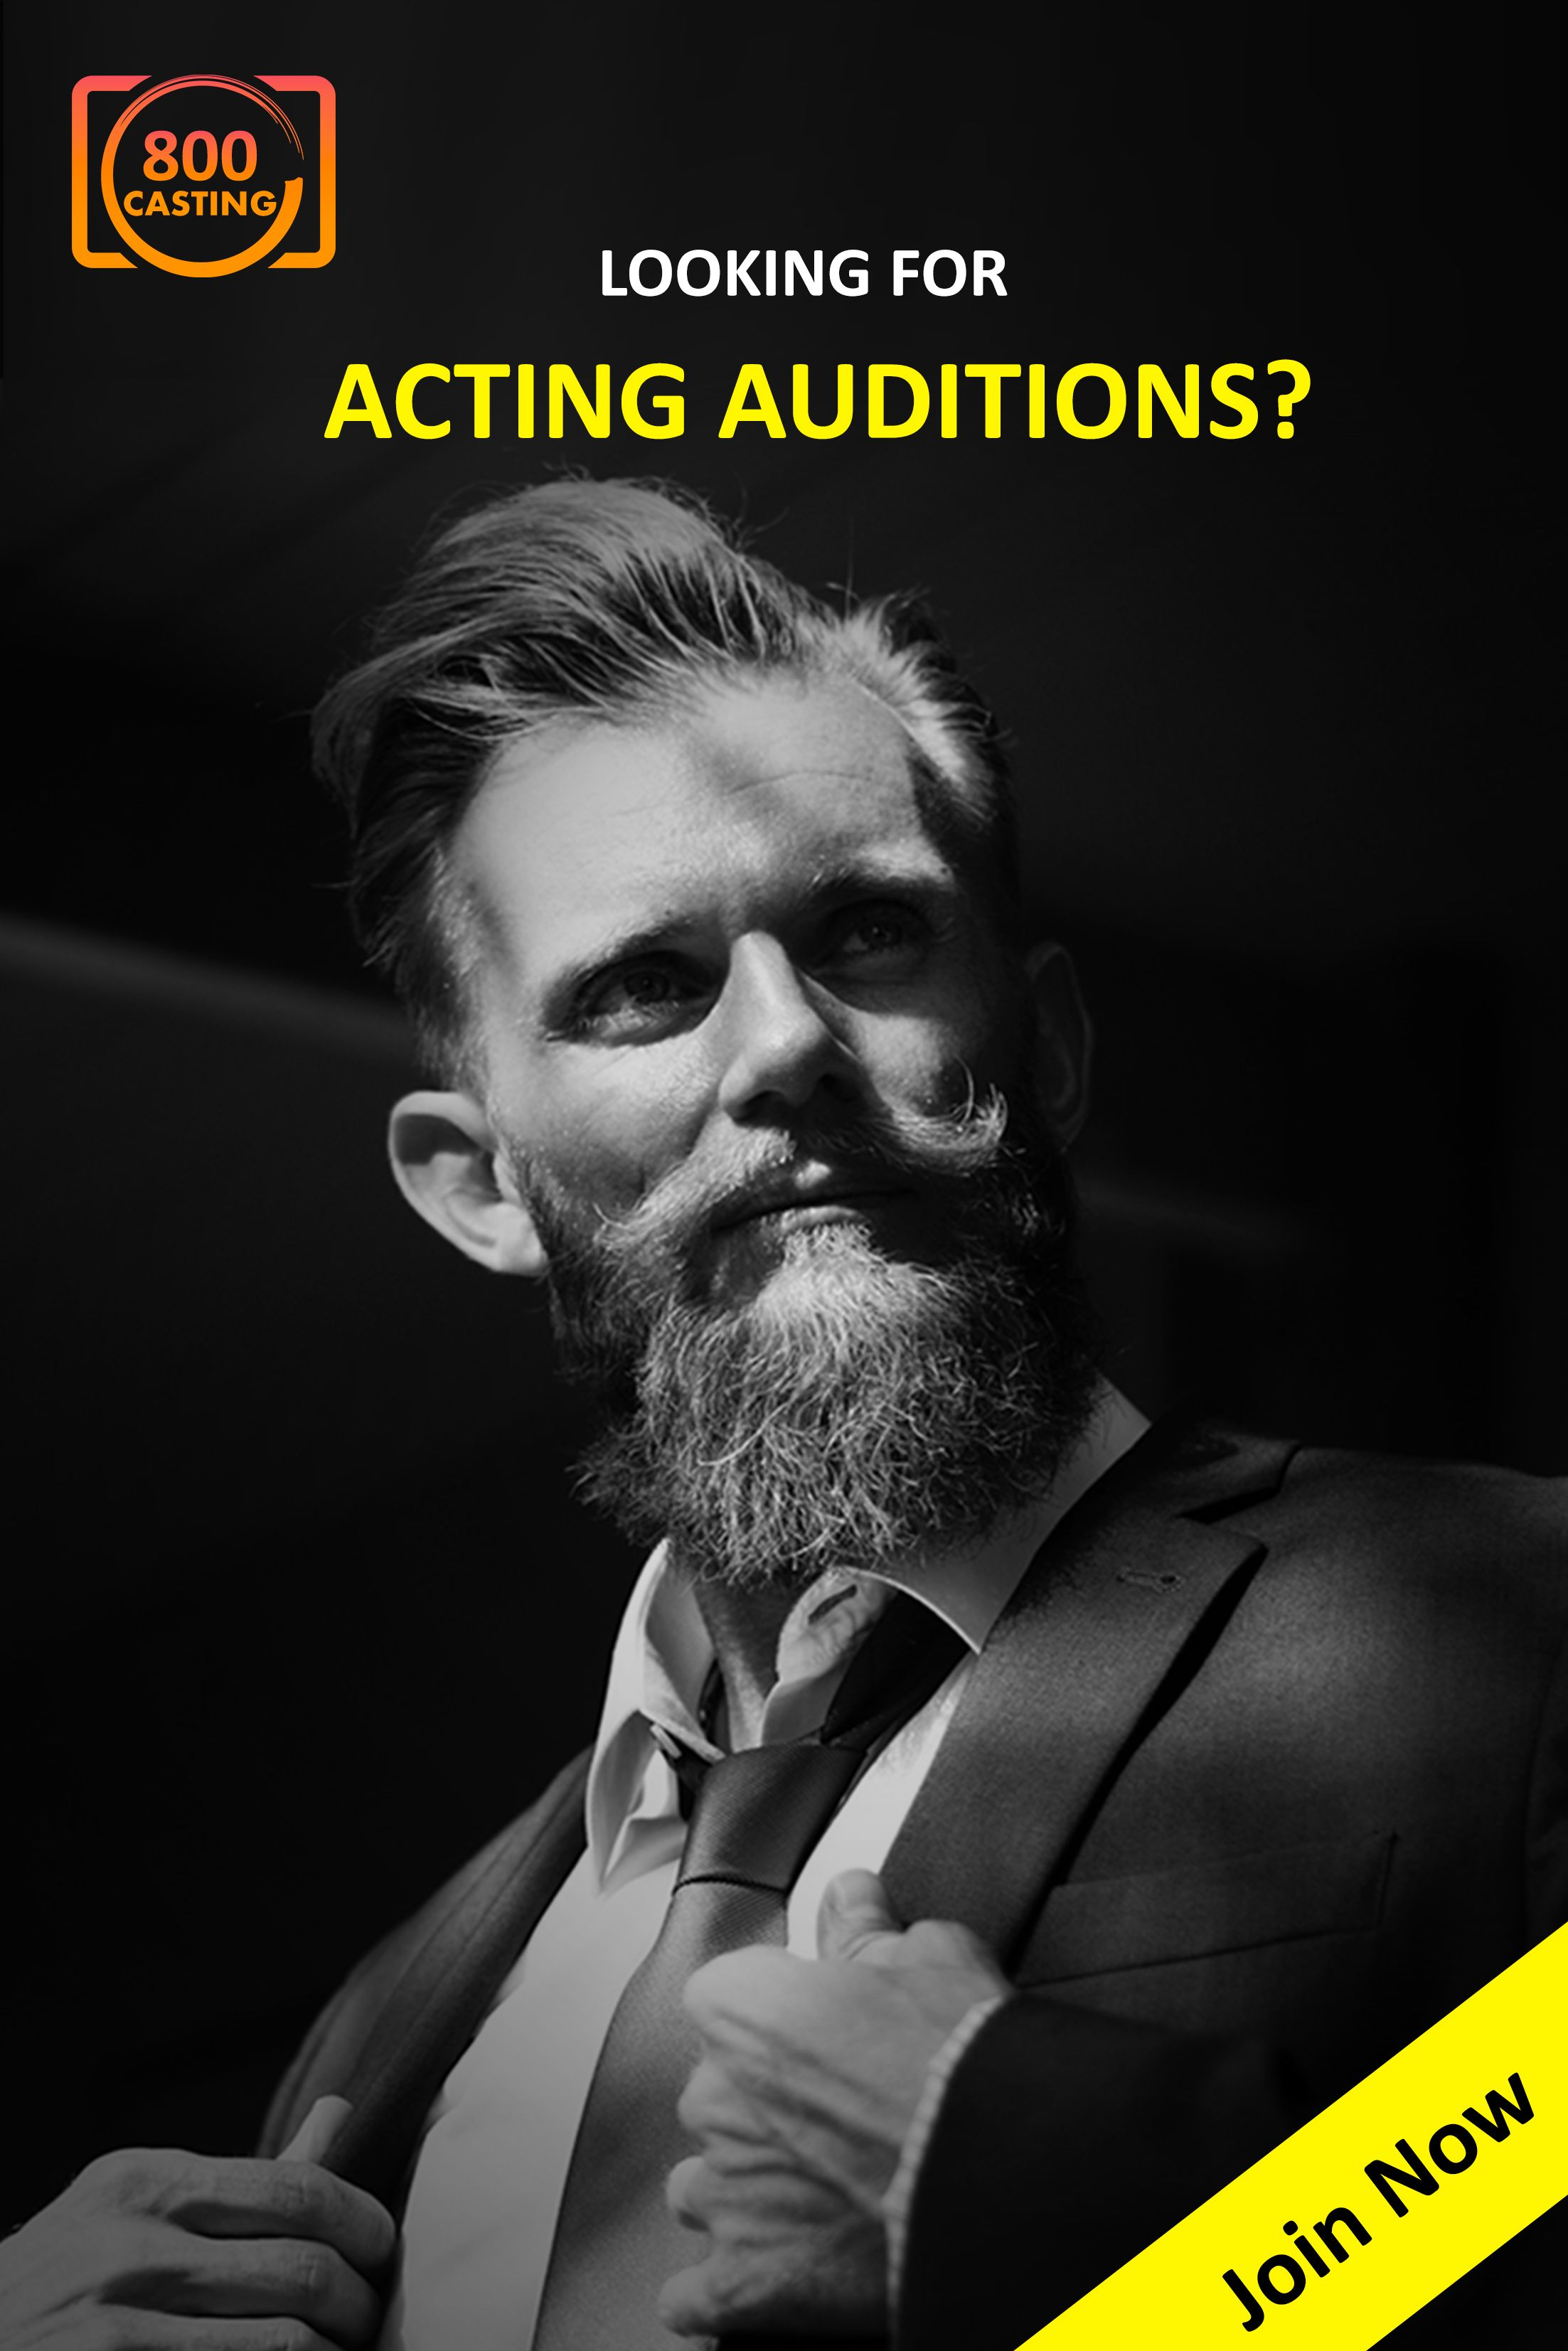 Looking for acting auditions? Join 800Casting Now